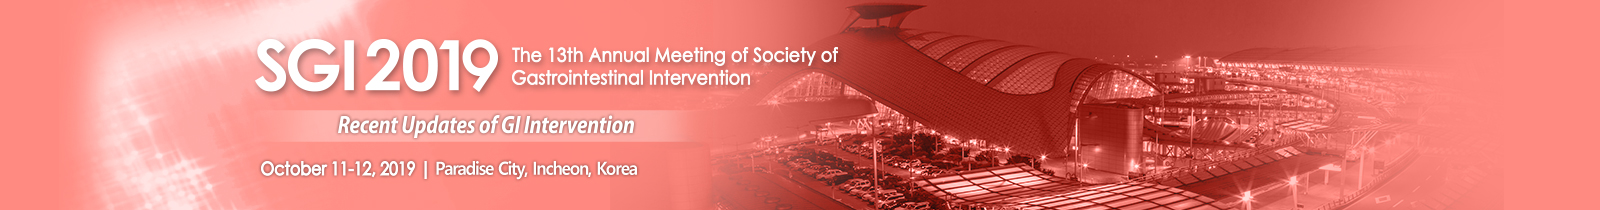 SGI 2019 The 11th Annual Meeting of Society of Gastrointestinal Intervention